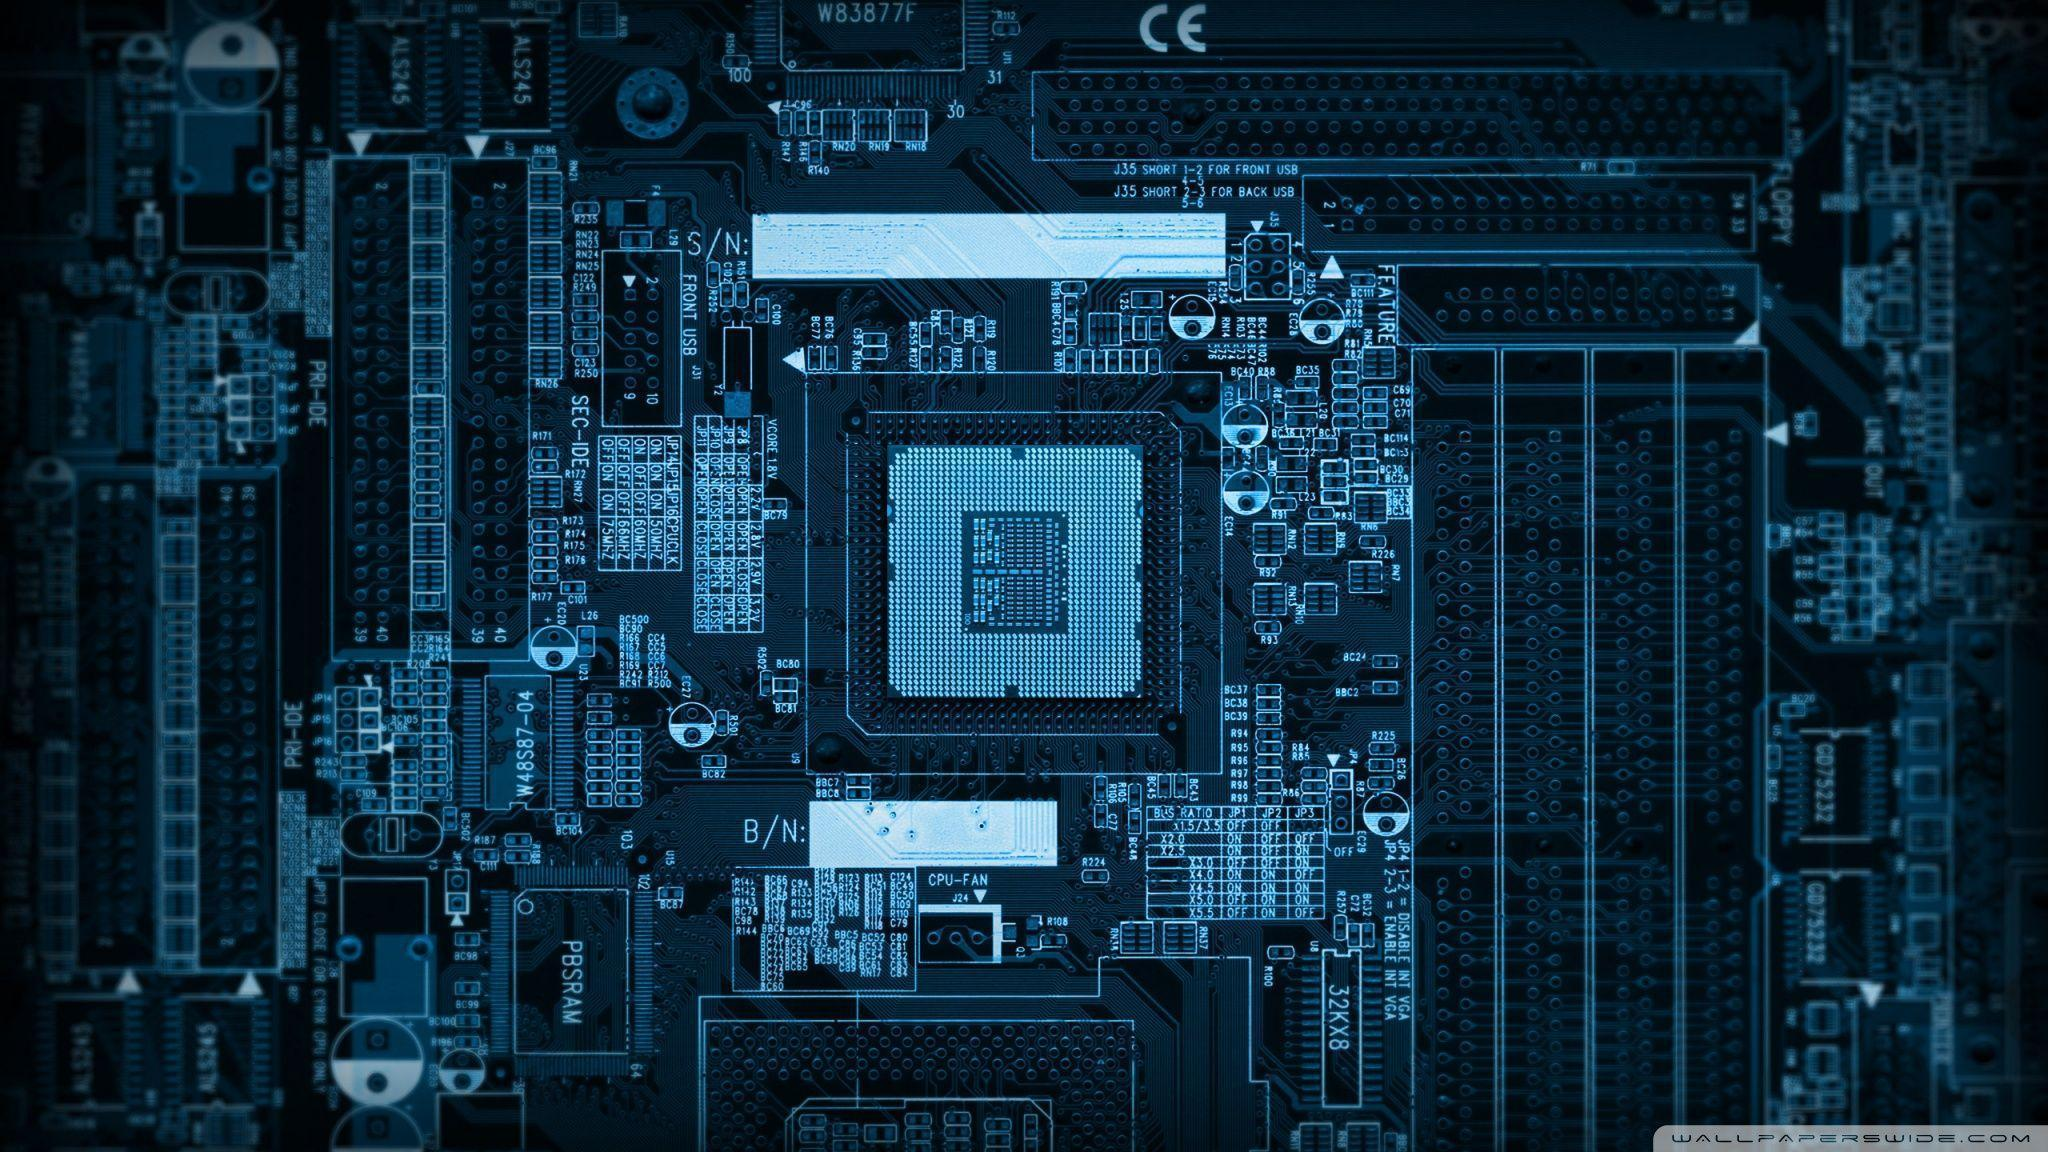 Motherboard HD desktop wallpaper : High Definition : Fullscreen ...